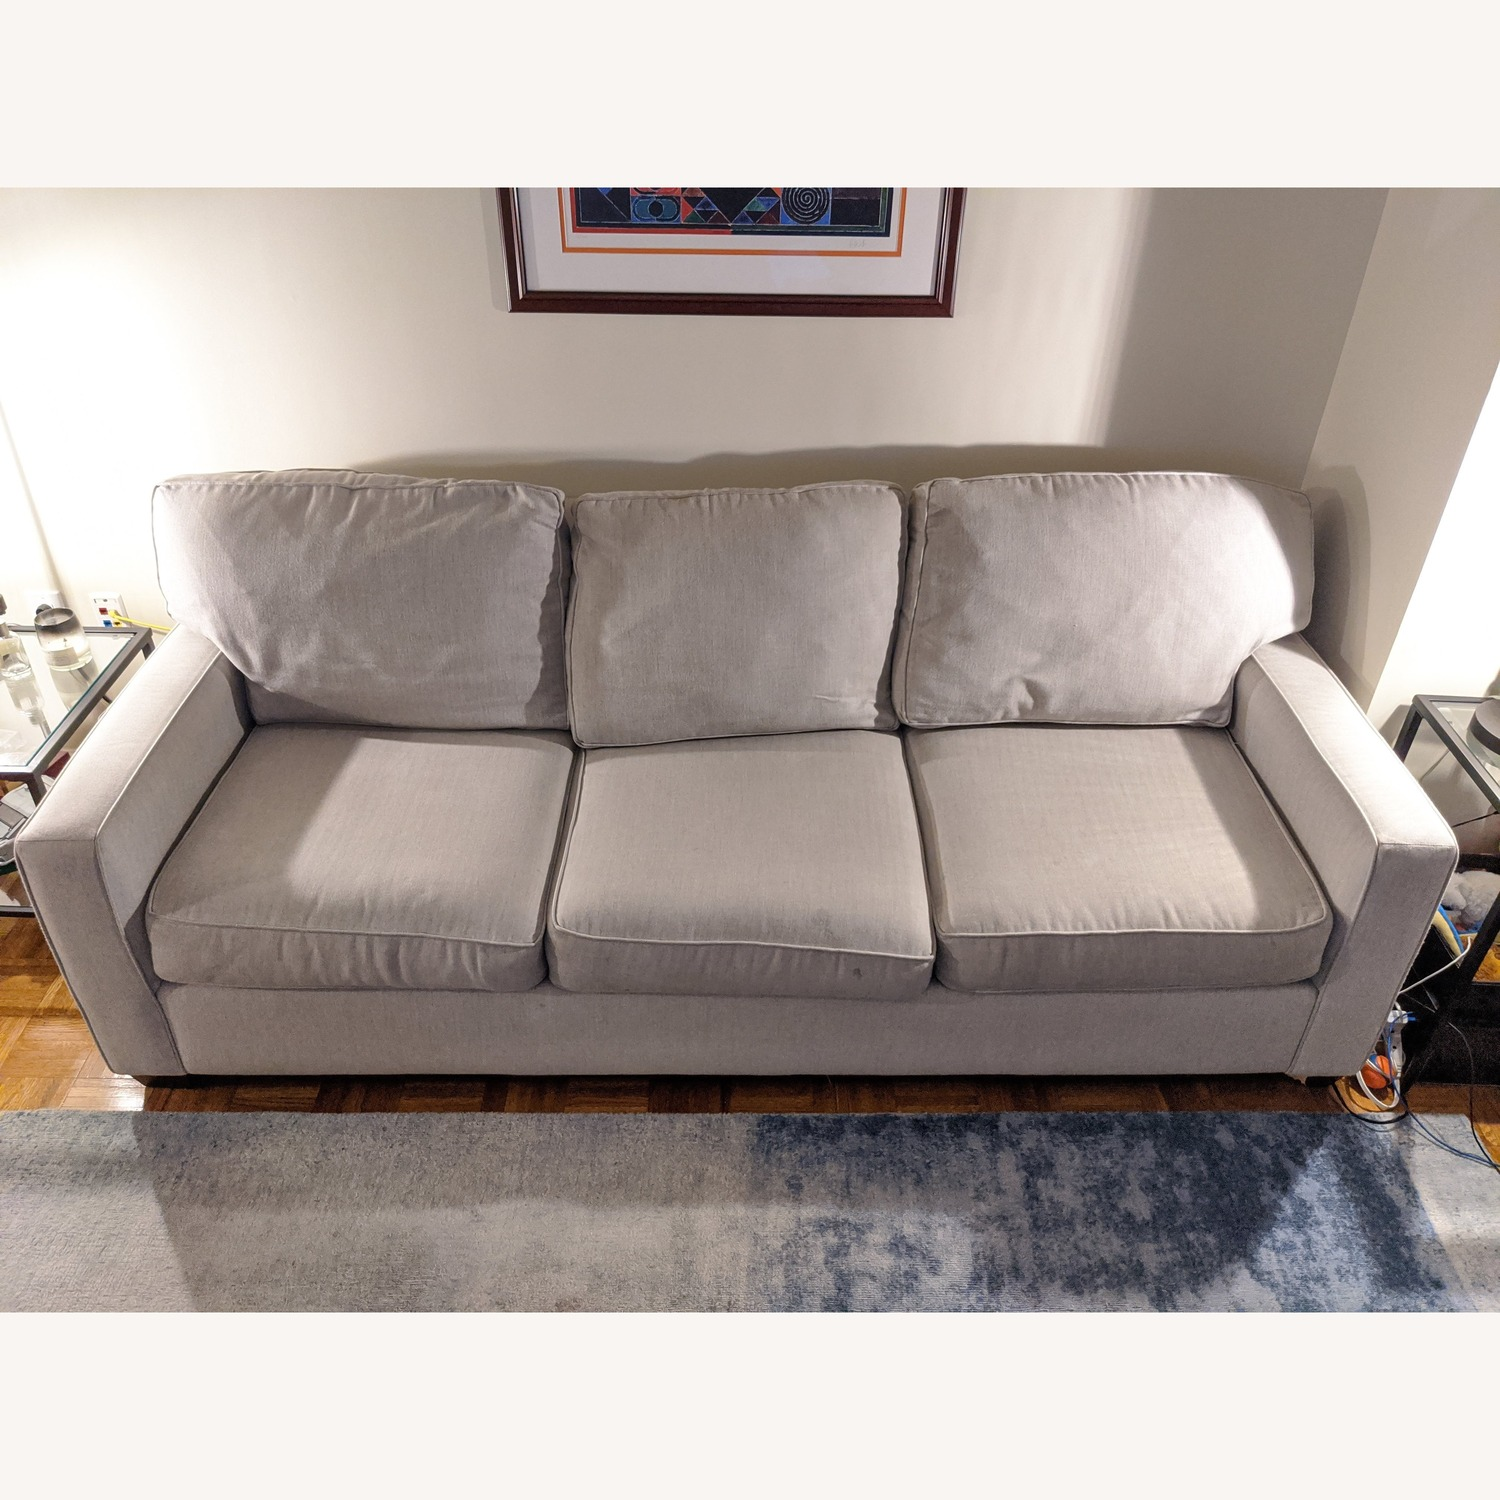 Pottery Barn Buchanan Square Arm Upholstered Couch - image-1